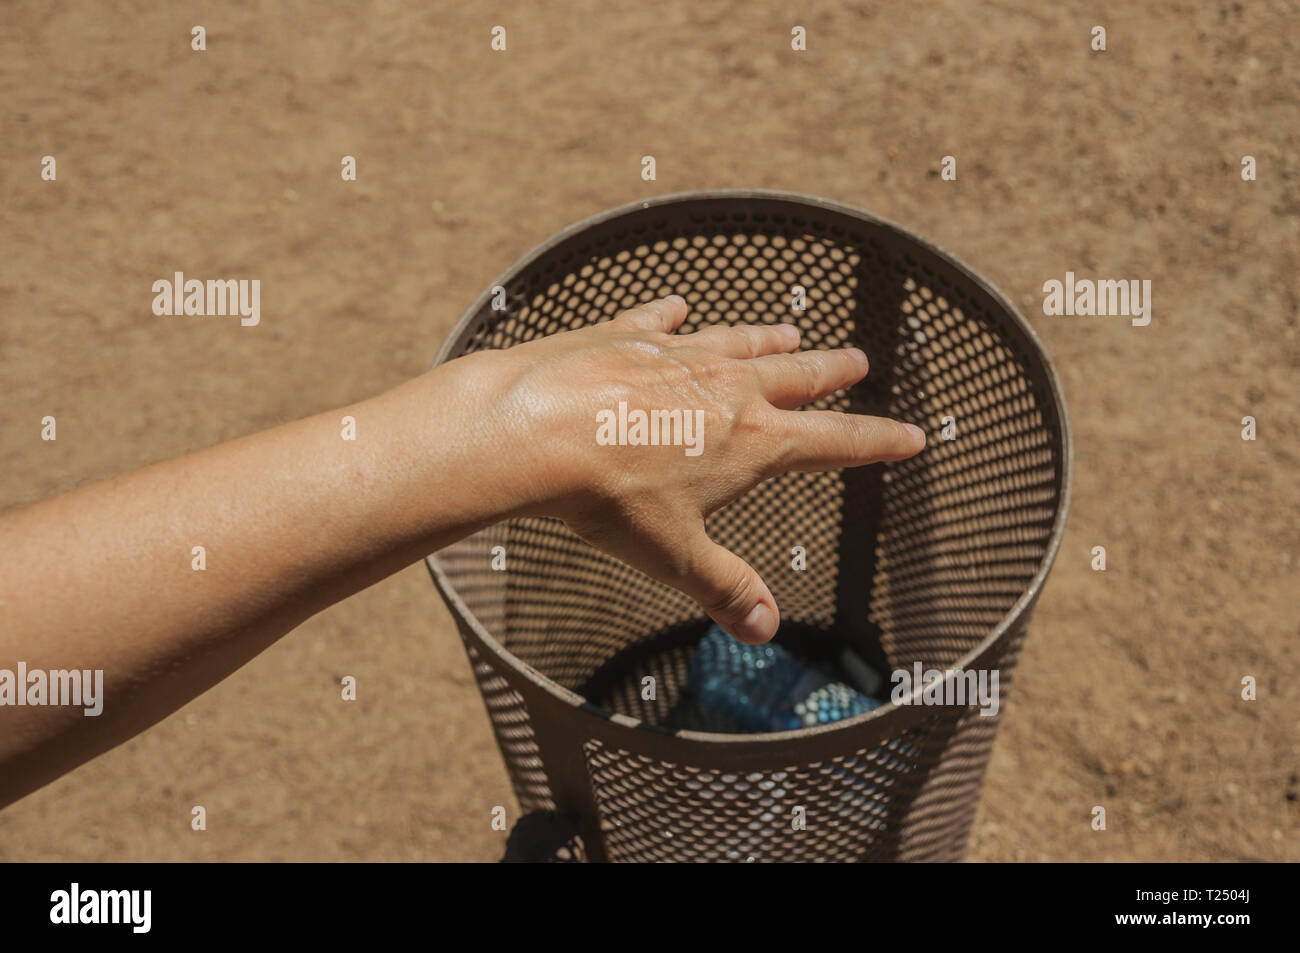 Hand of woman throwing a plastic bottle inside a trash can on a park at Merida. The city preserves many buildings of ancient Rome in Spain. - Stock Image